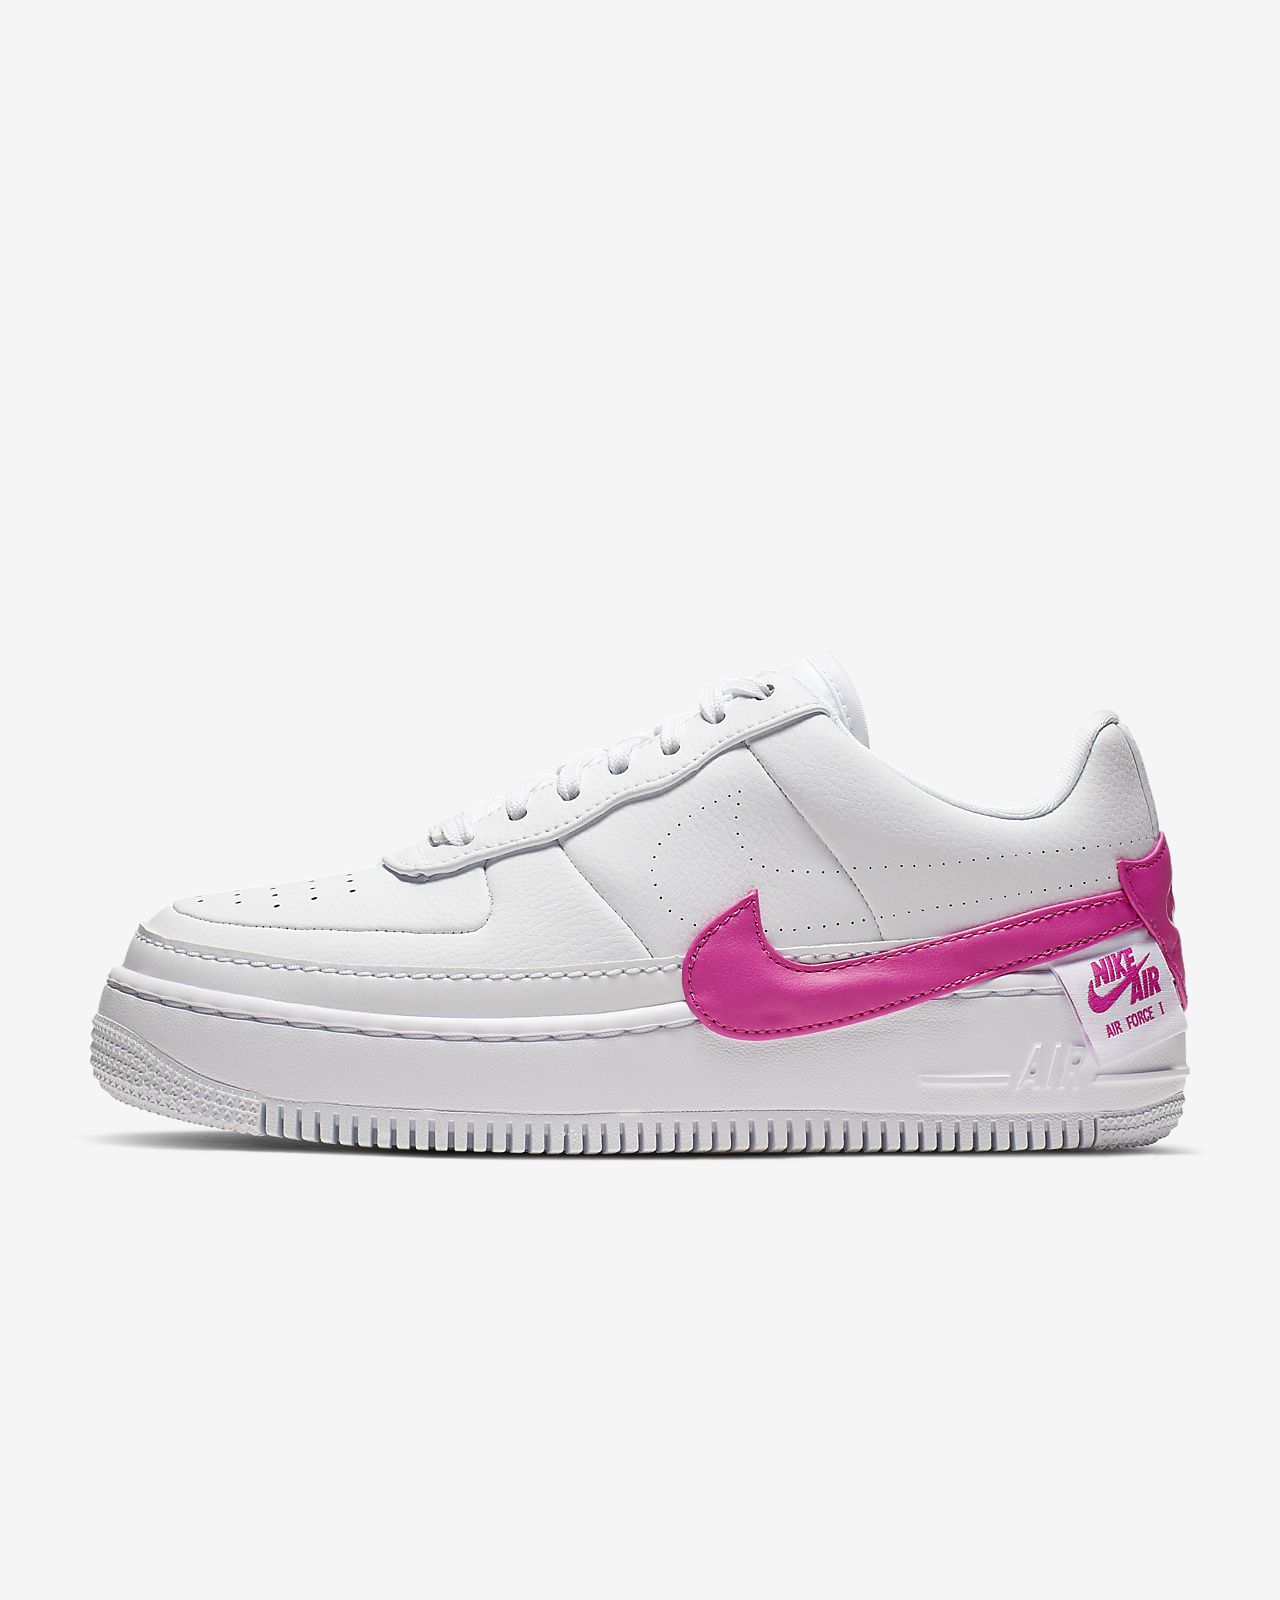 c8443919bce8 Nike Air Force 1 Jester XX Shoe. Nike.com CA